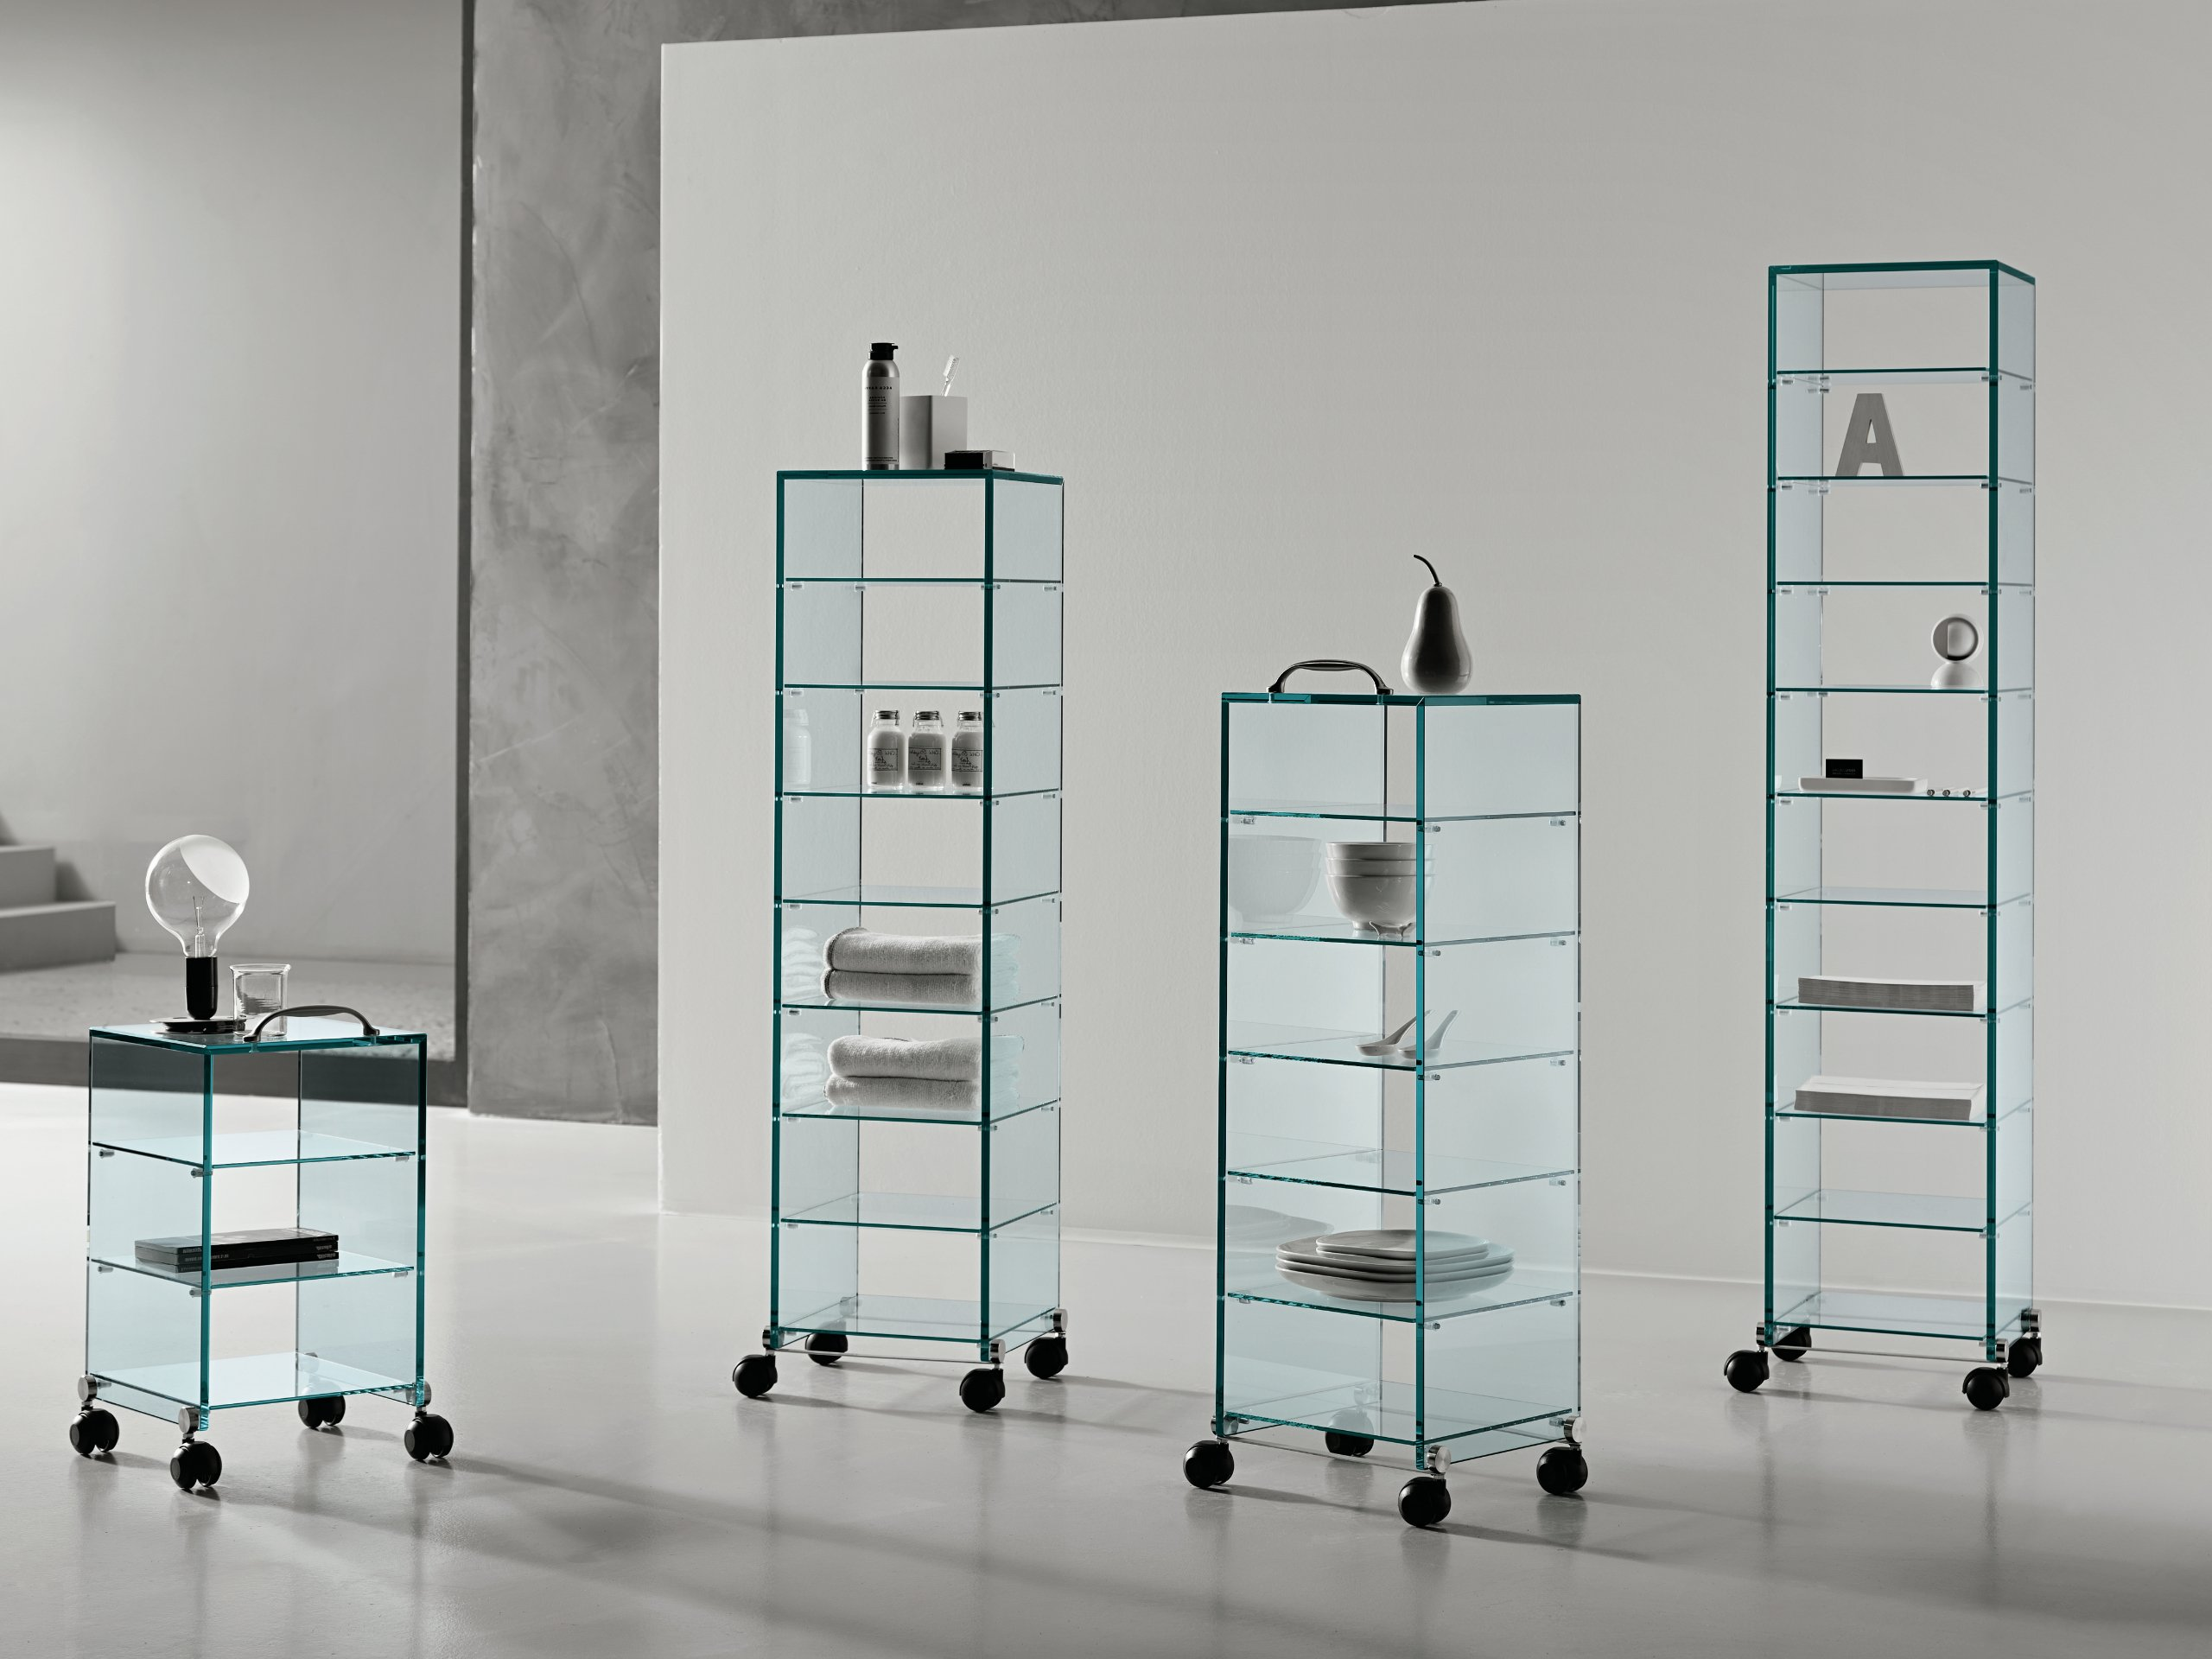 Glass display cabinet with casters dappertutto by t d tonelli design design - Vitrine en verre ikea ...